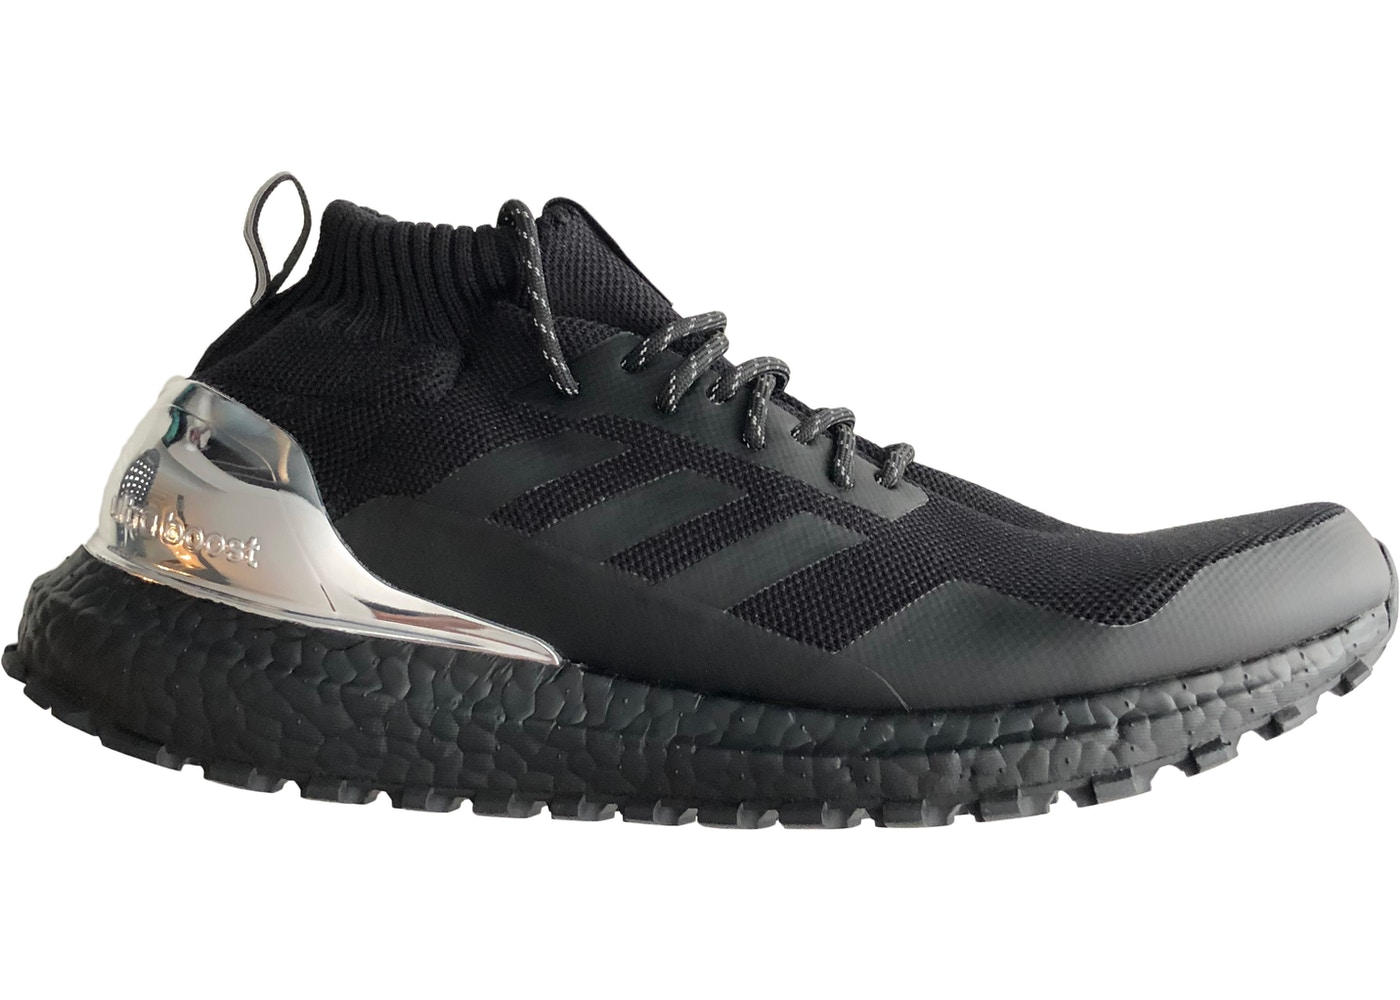 7d3115498 adidas Ultra Boost Shoes - Last Sale